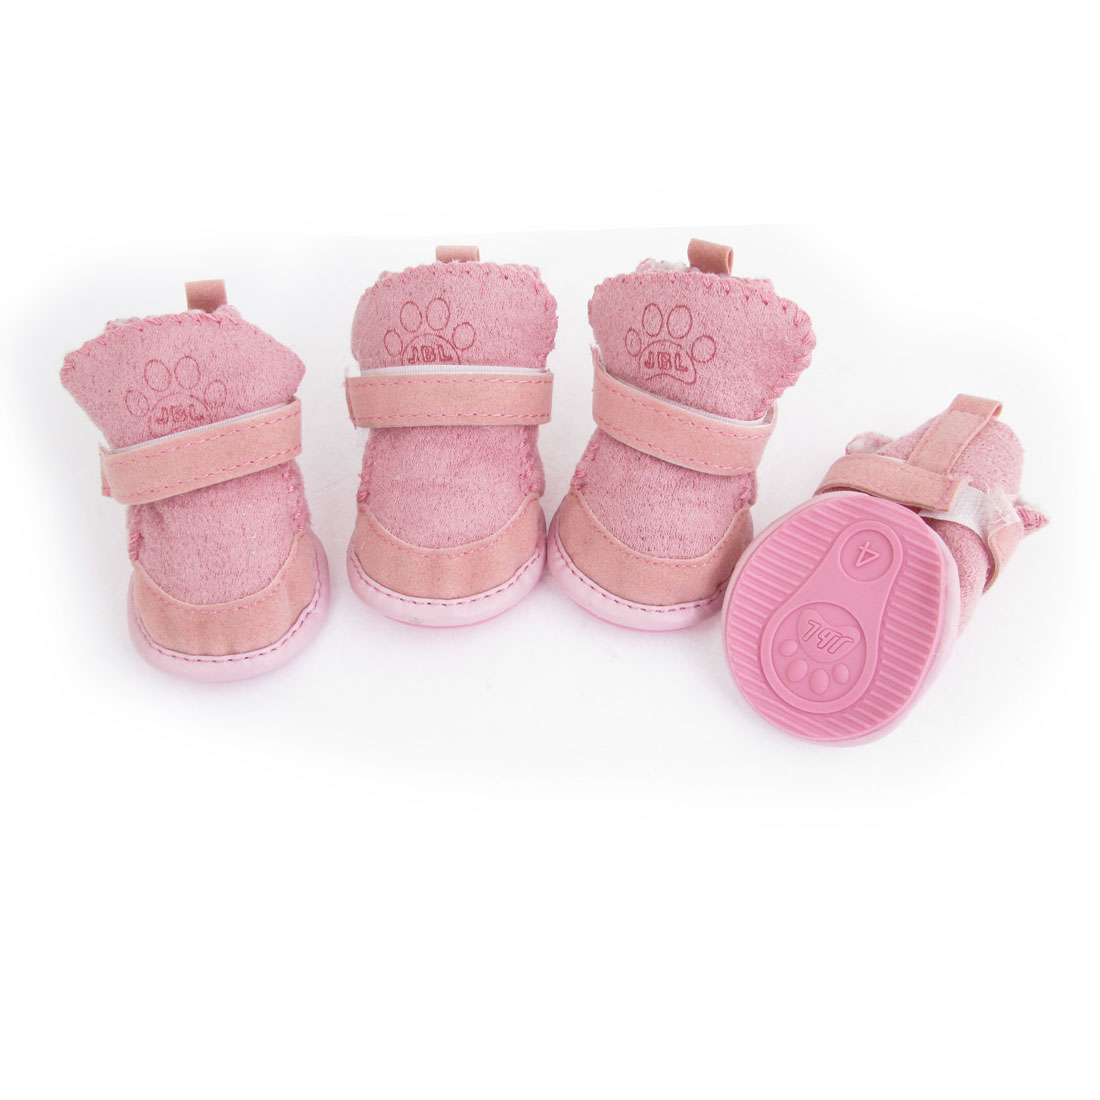 Size 4 Nonslip Sole Doggy Dog Snow Boots Style Shoes Pink 4 Pcs